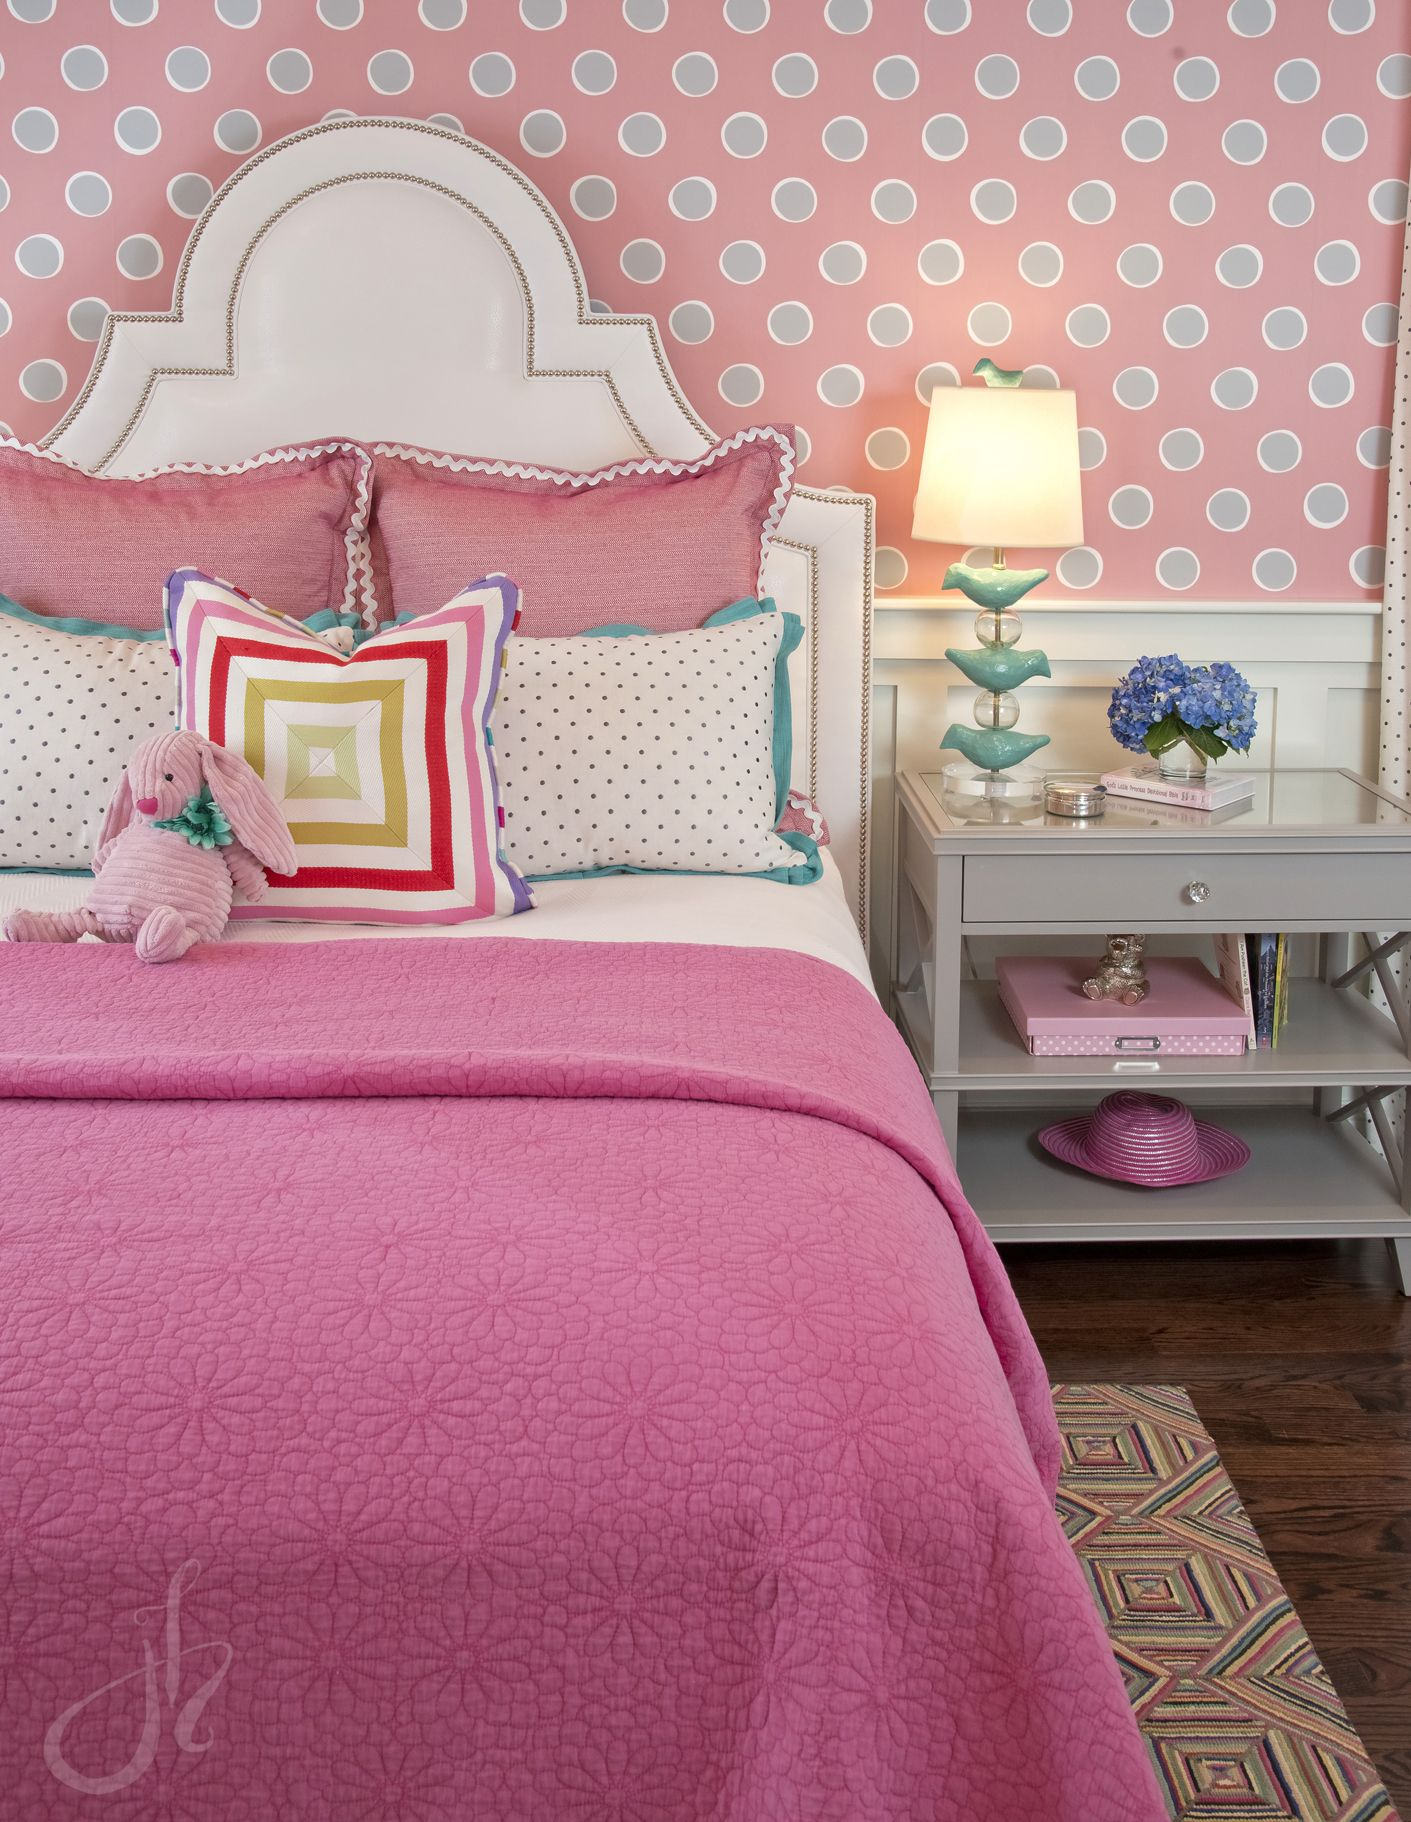 Girls bedroom Upholstered headboard Leather upholstered headboard Pink polka dot Serena and Lily wall paper Stray